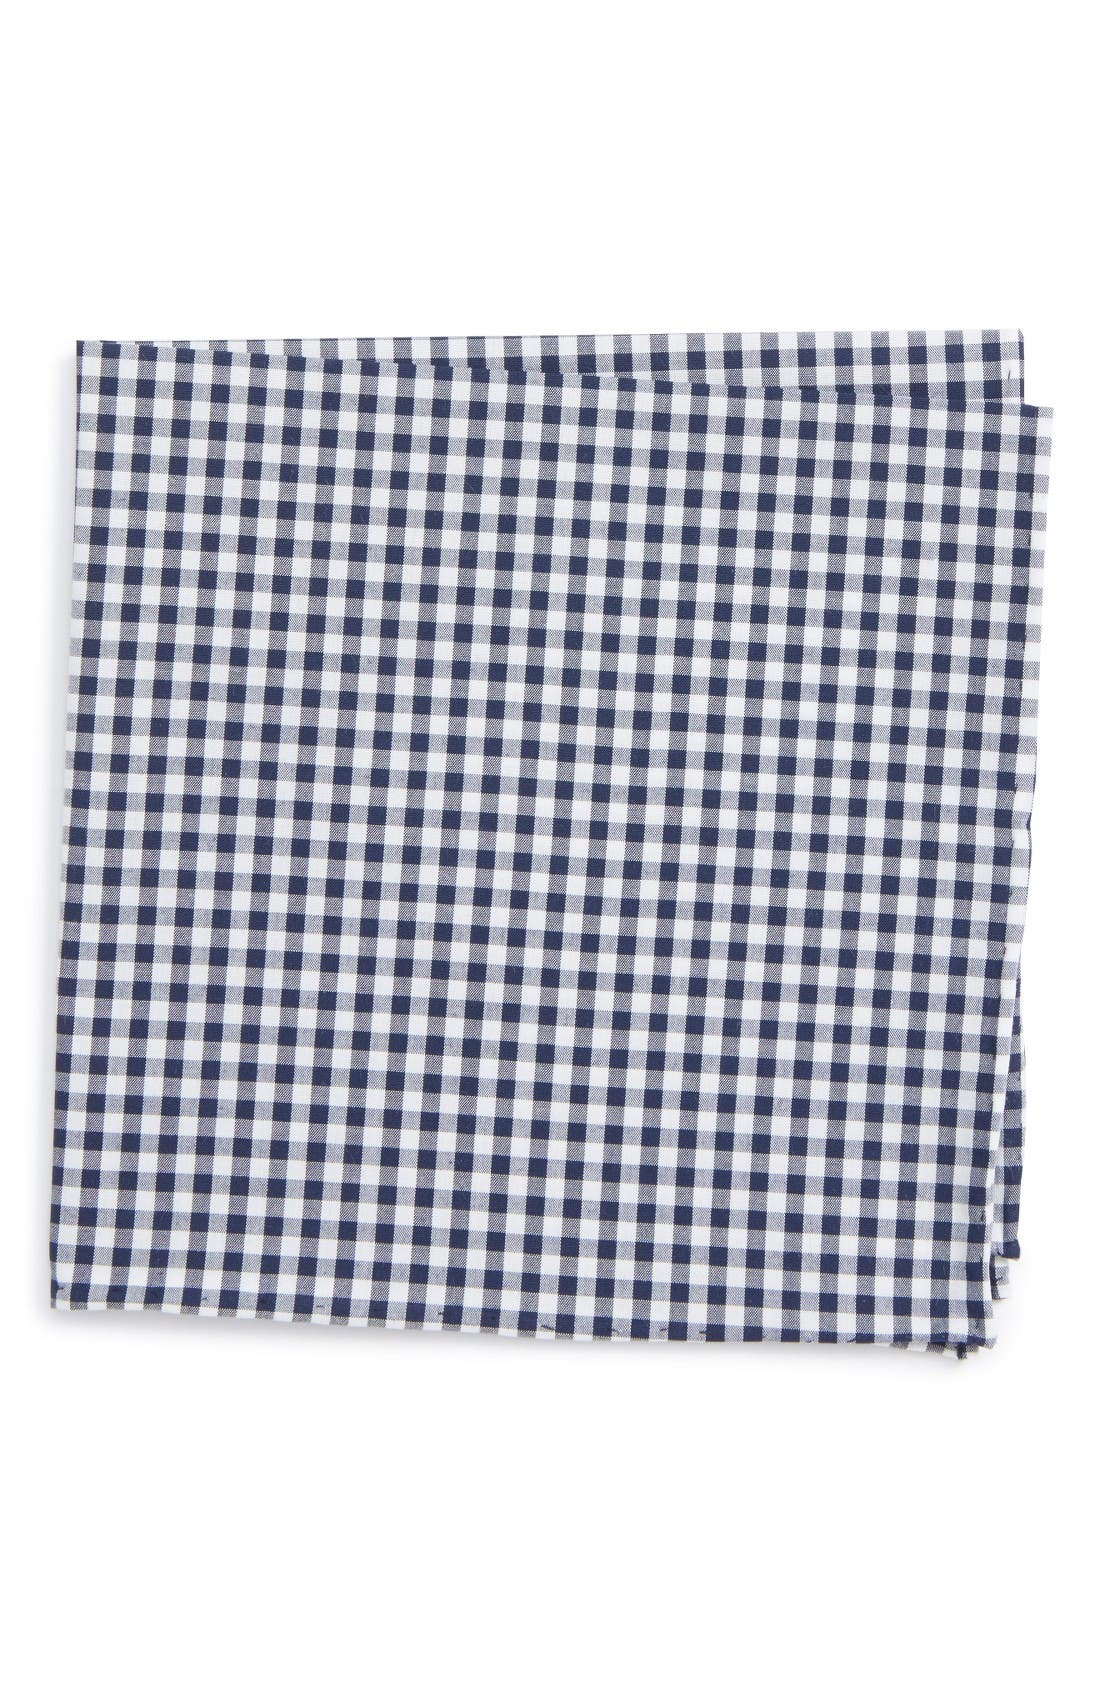 Alternate Image 1 Selected - The Tie Bar Check Cotton Pocket Square